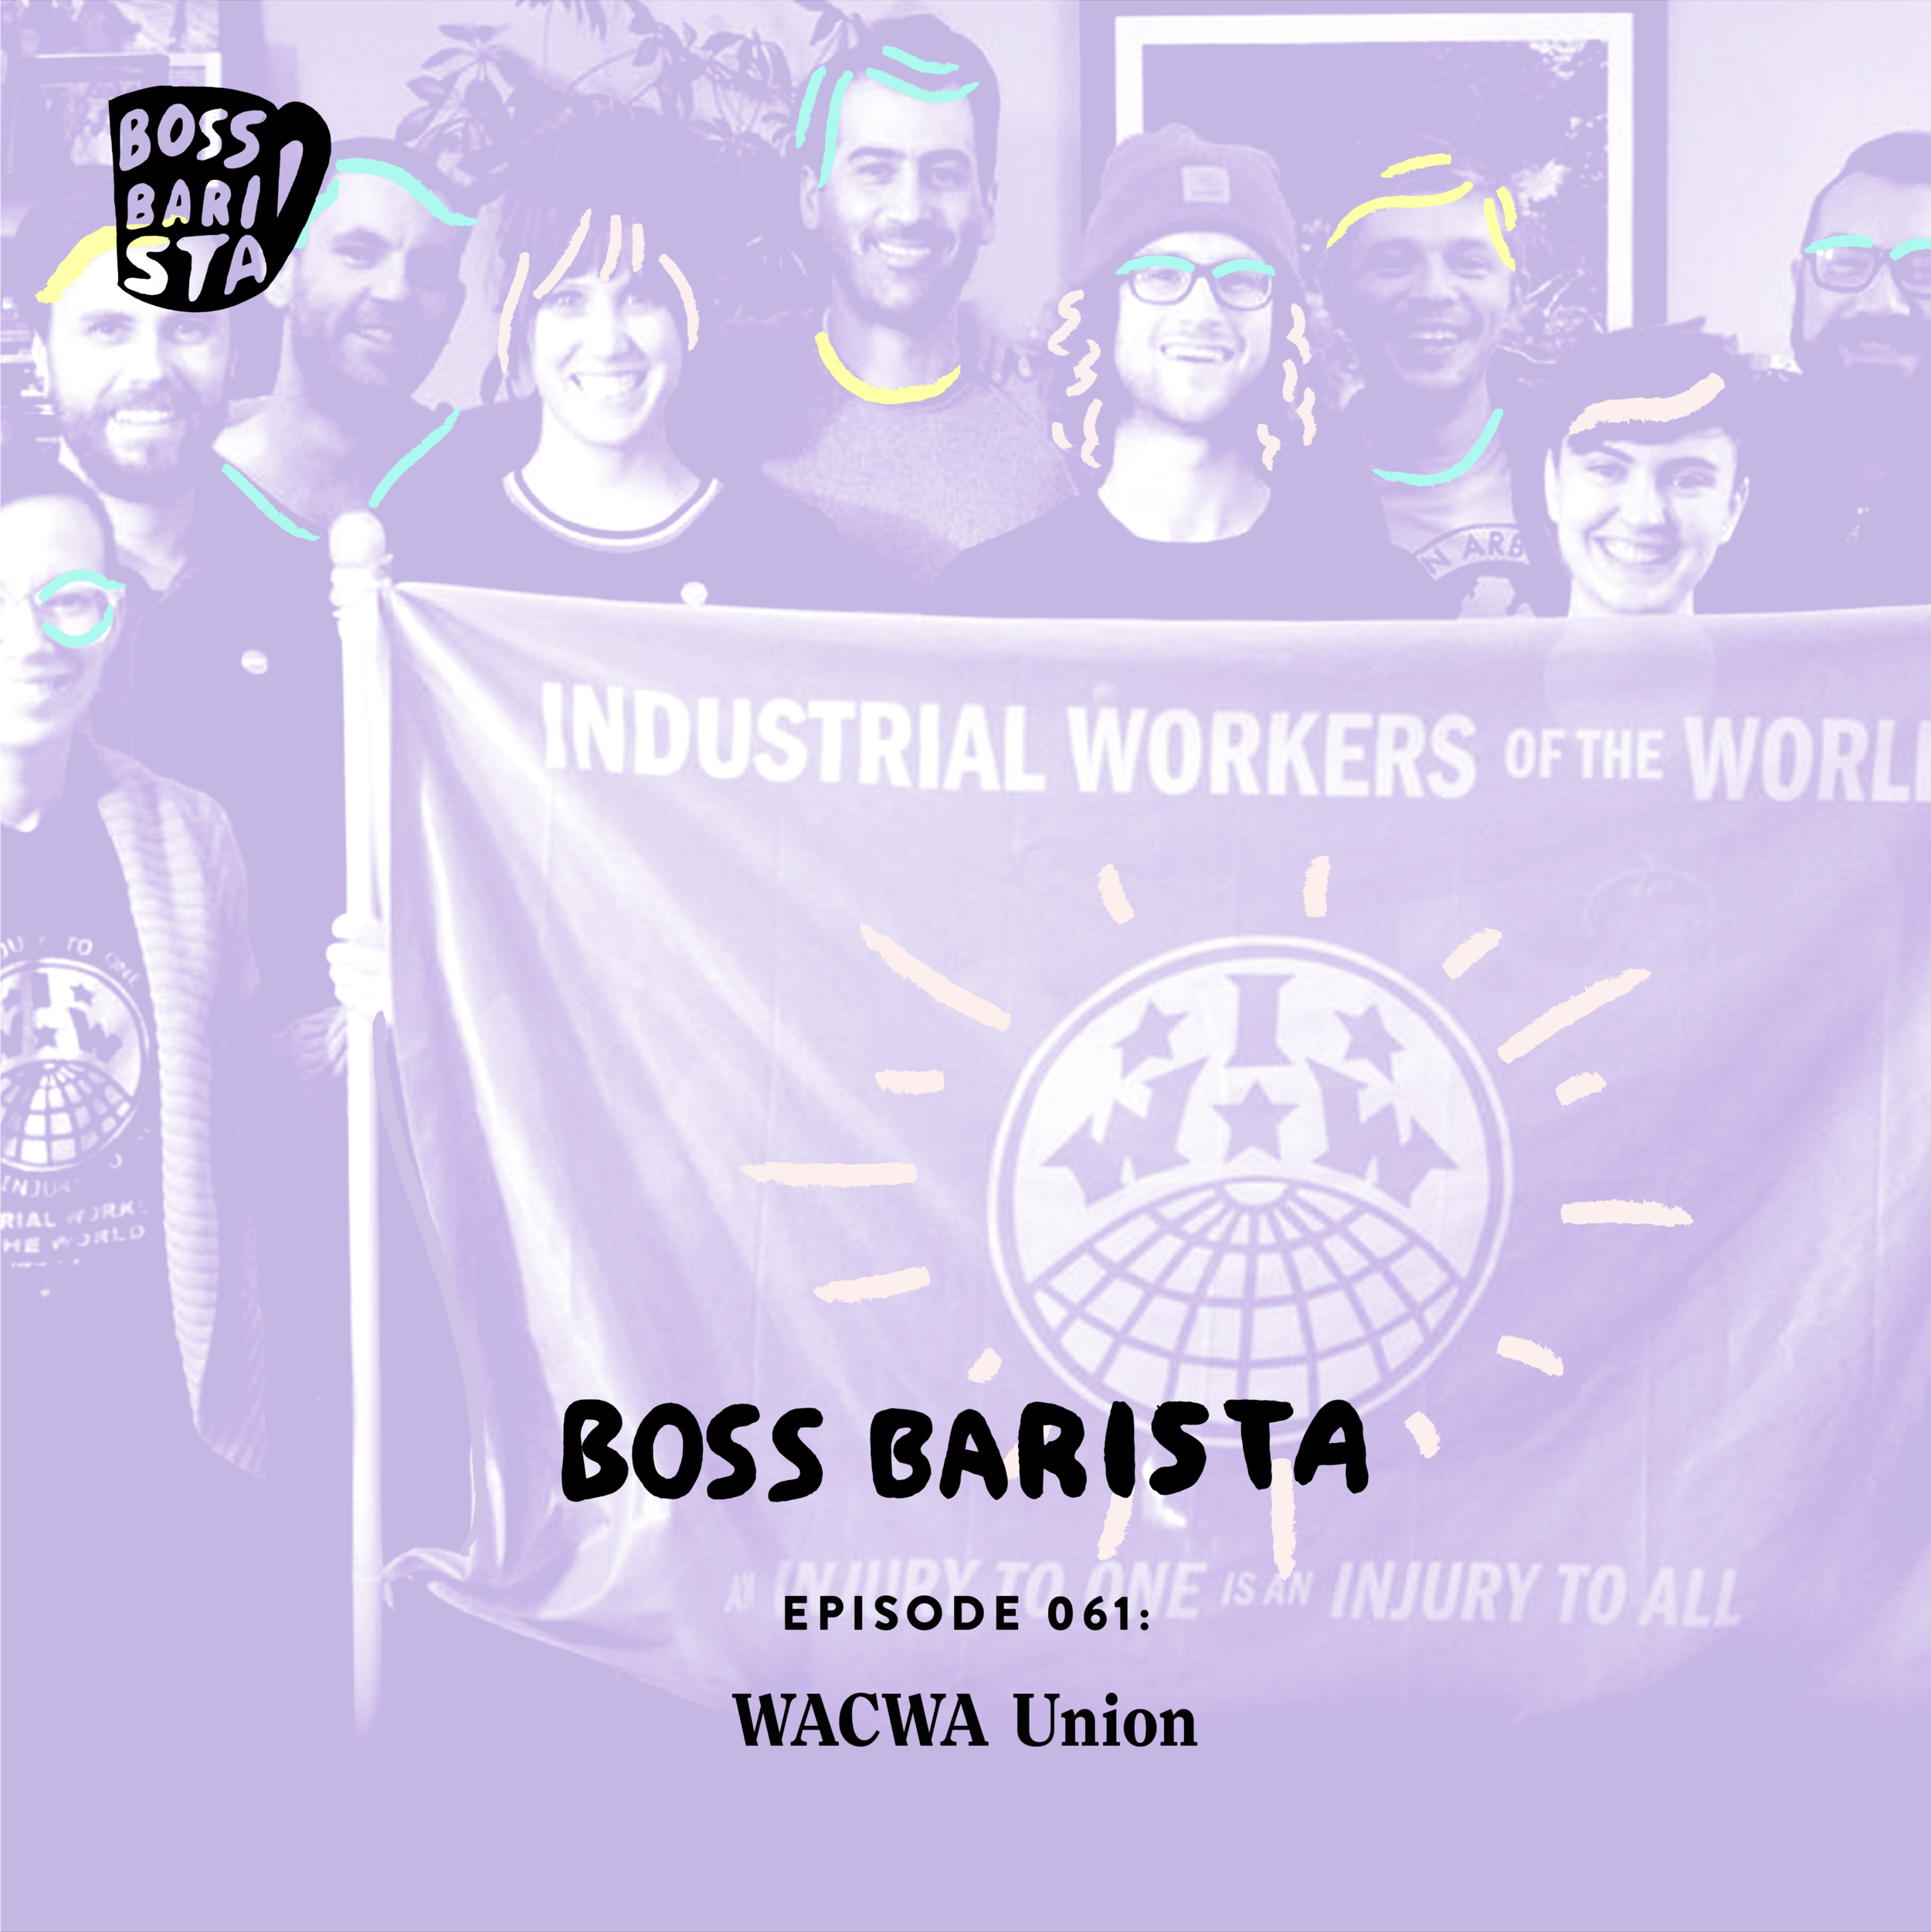 Boss_Barista_061_Cover_EPISODE_COVER.png